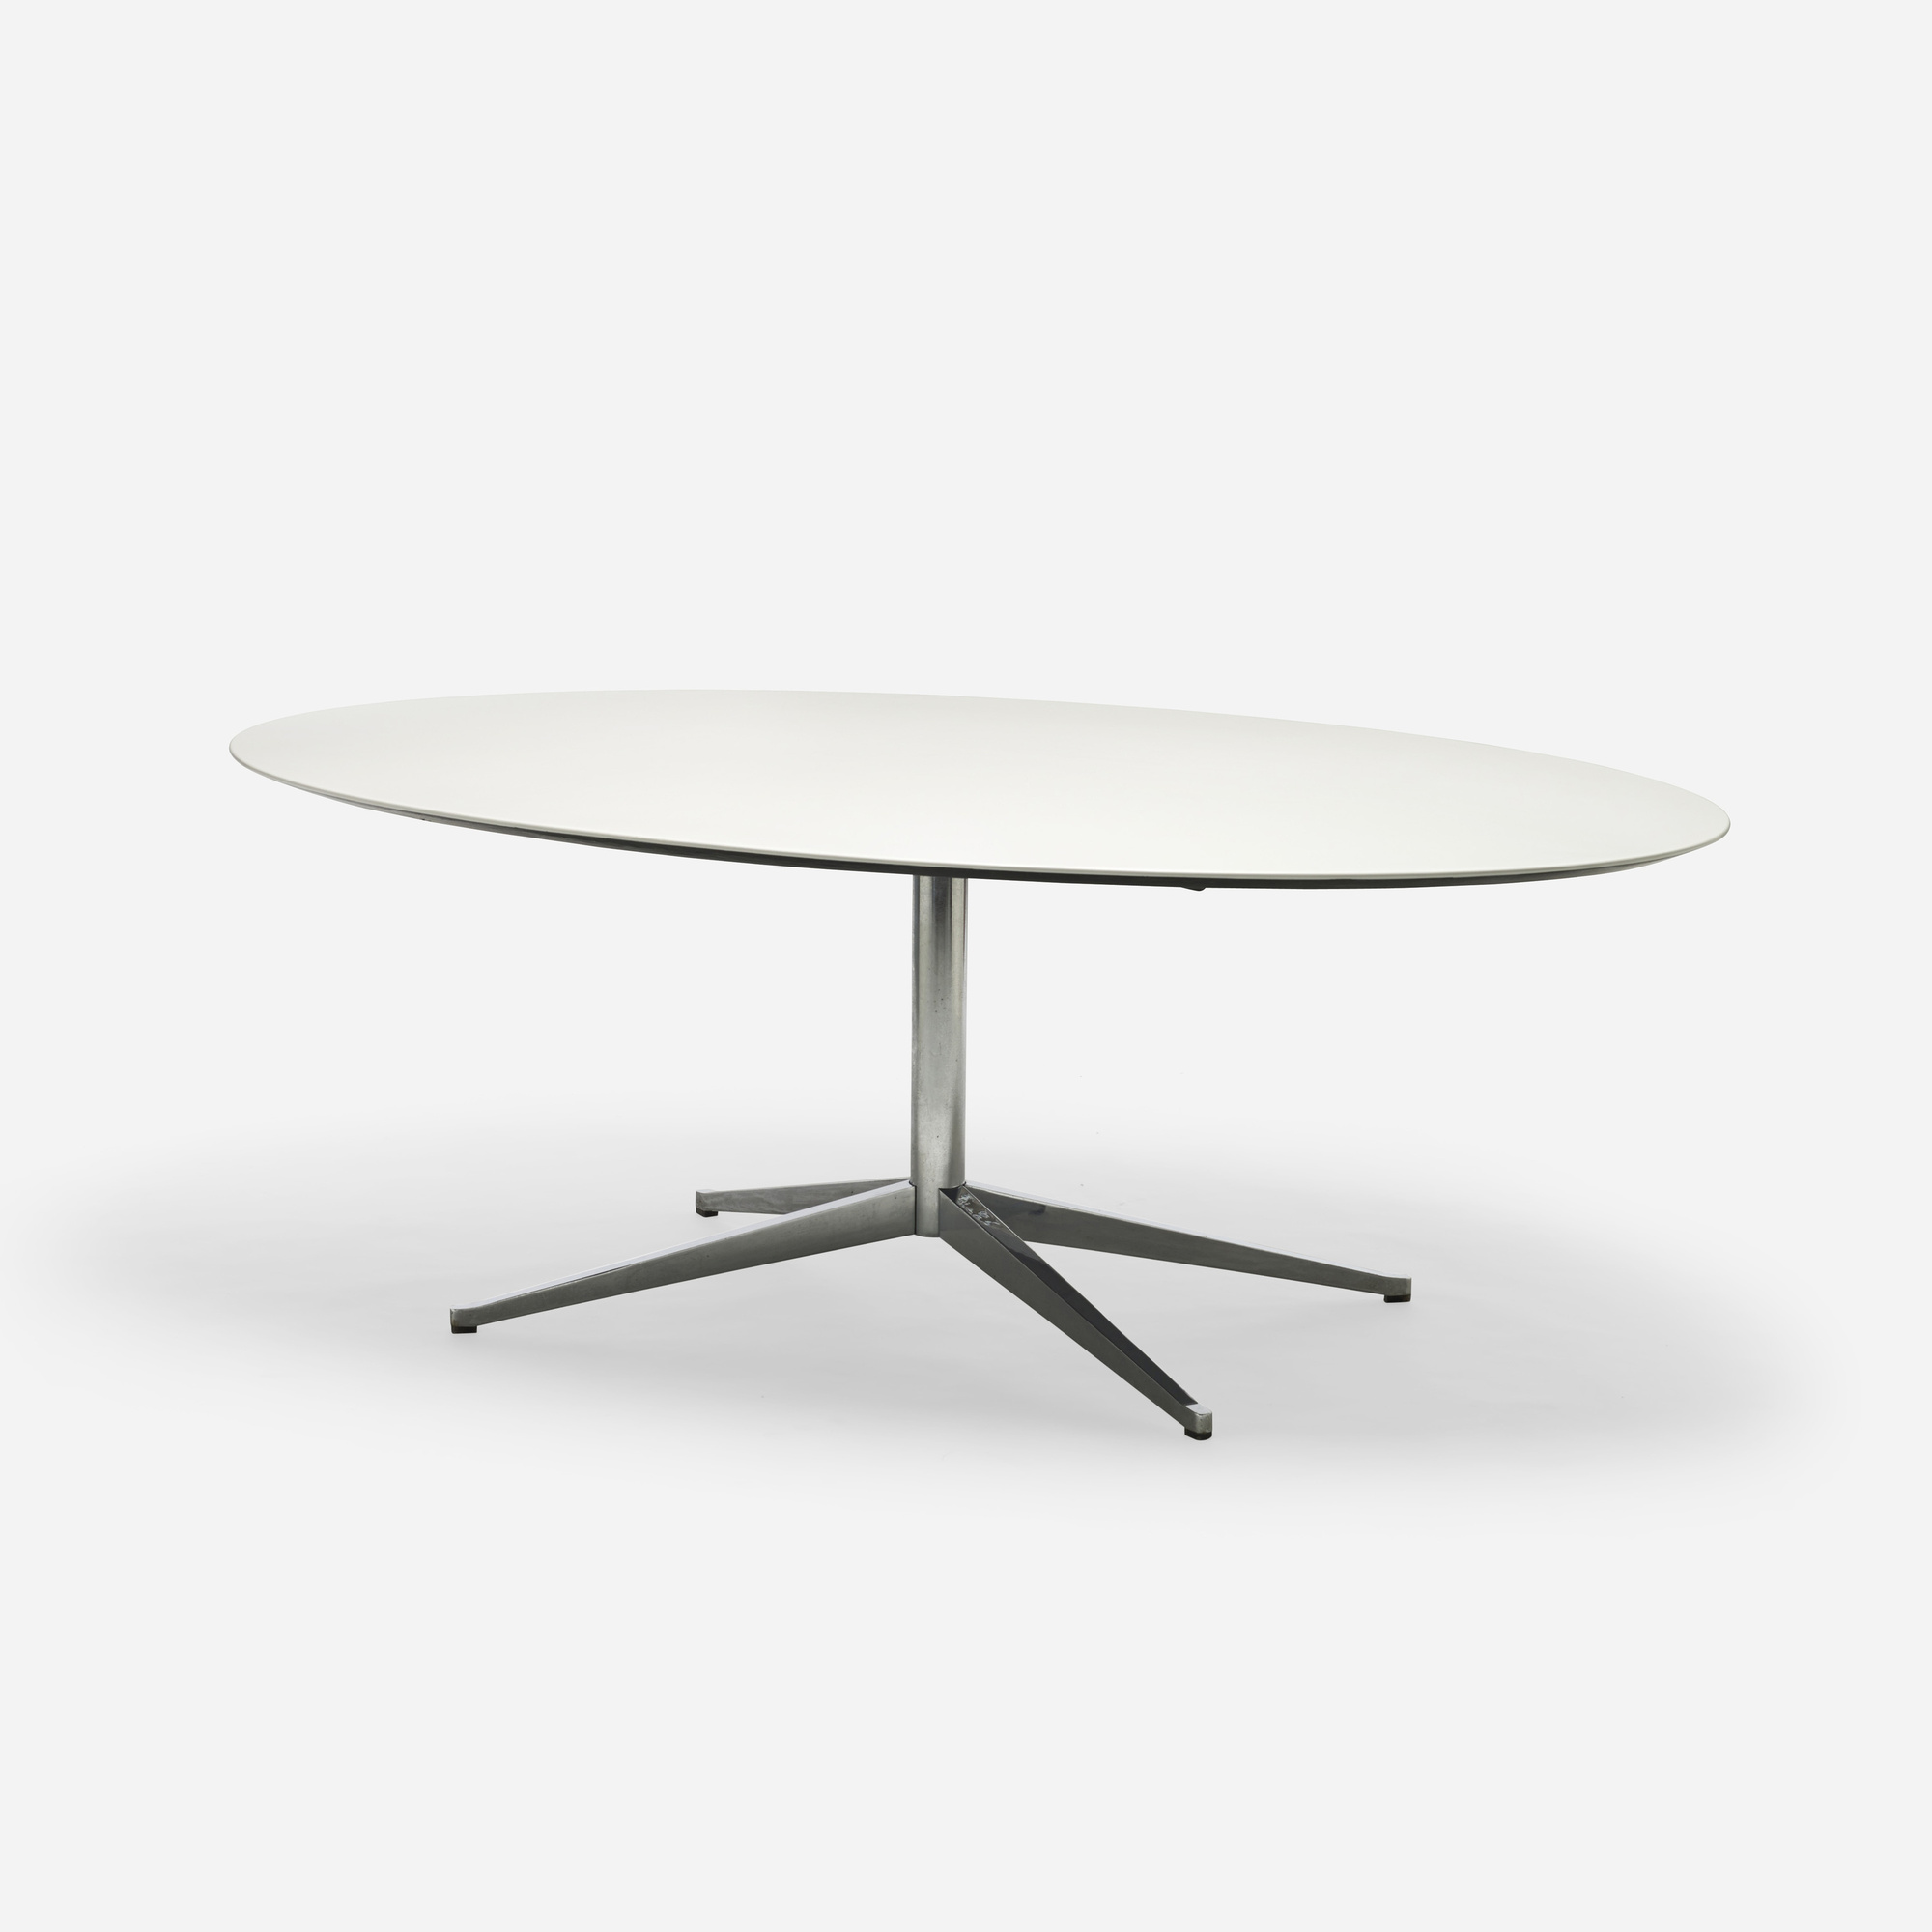 658a01ff5664 355  Florence Knoll   dining table (1 of 2)